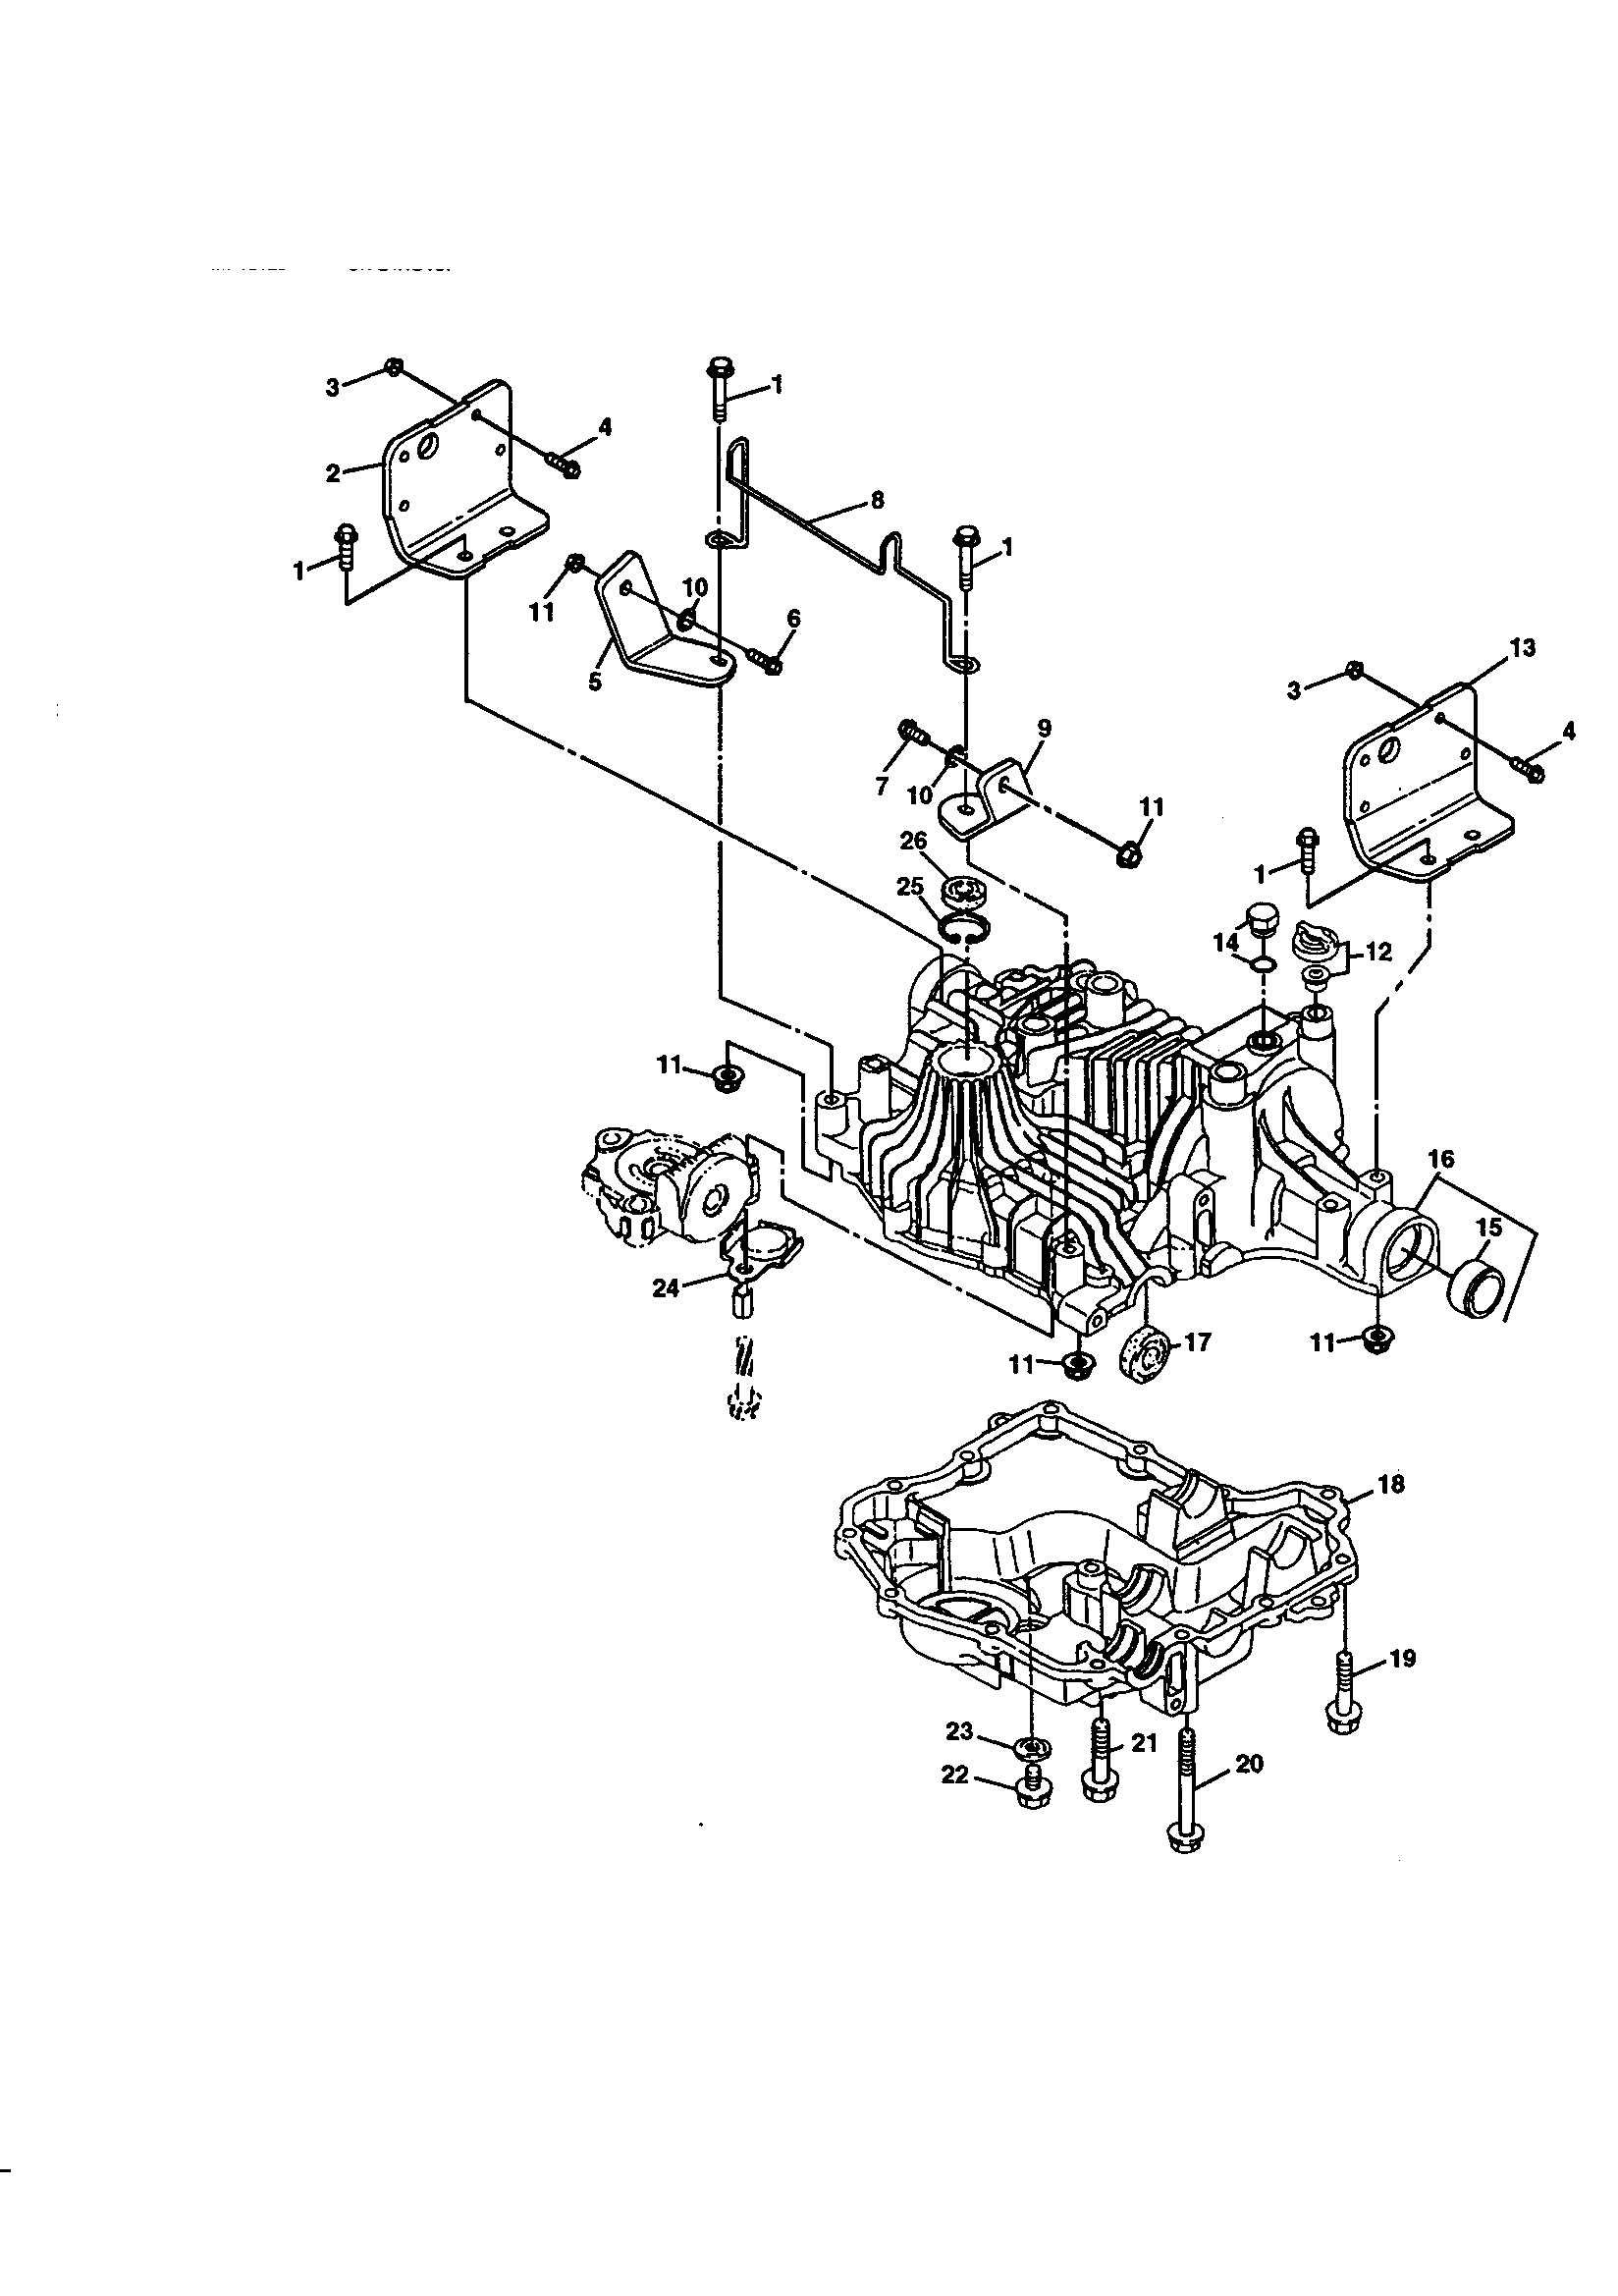 Wiring Diagram For Case Ingersoll